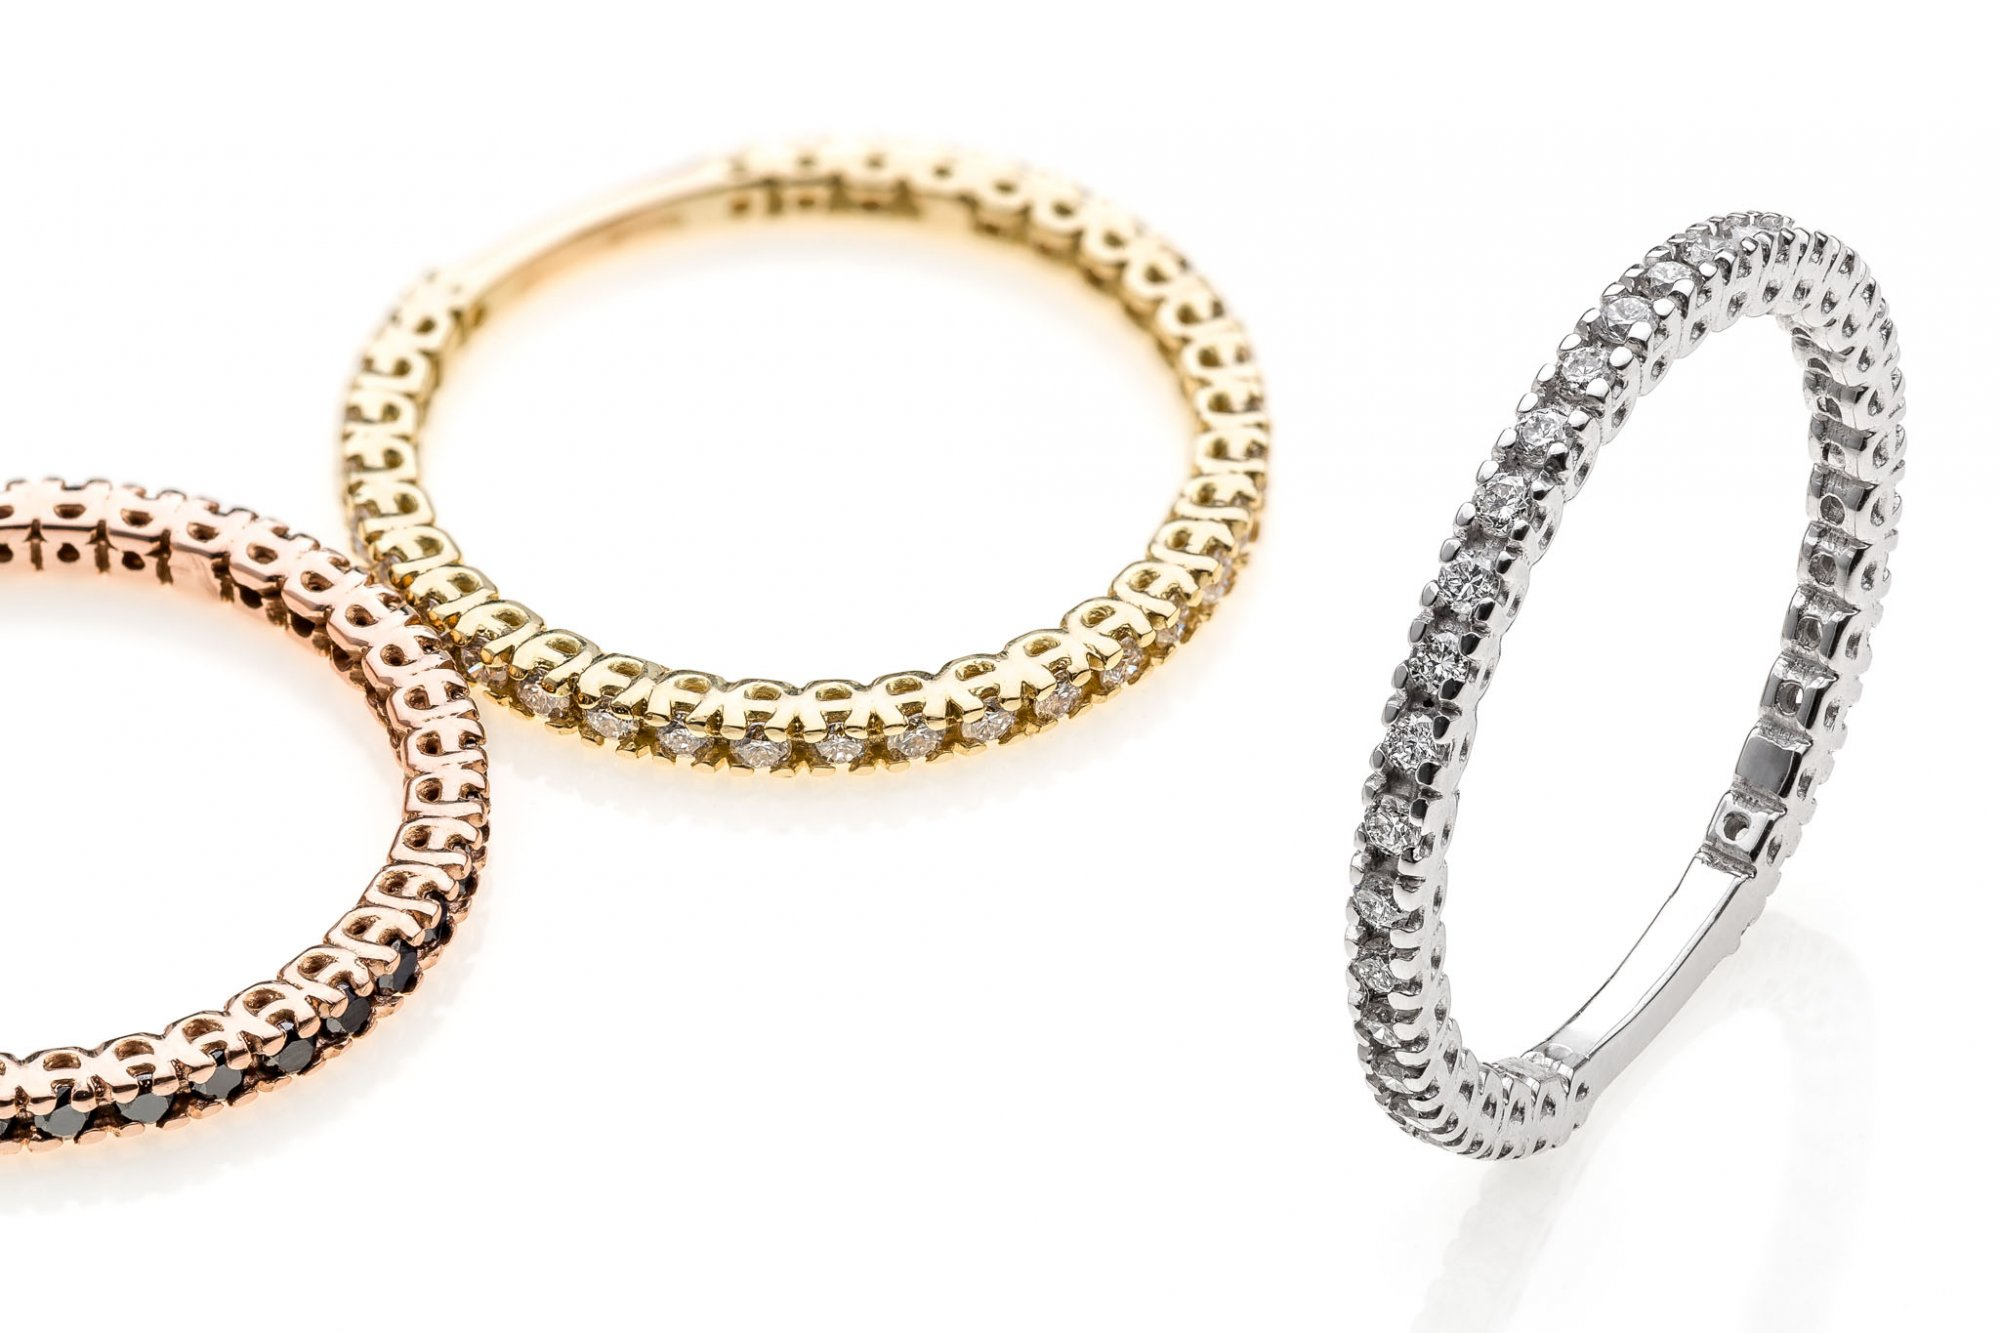 Eternity rings in 18 KT white,yellow and pink gold white round brilliant cut diamonds and black diamonds